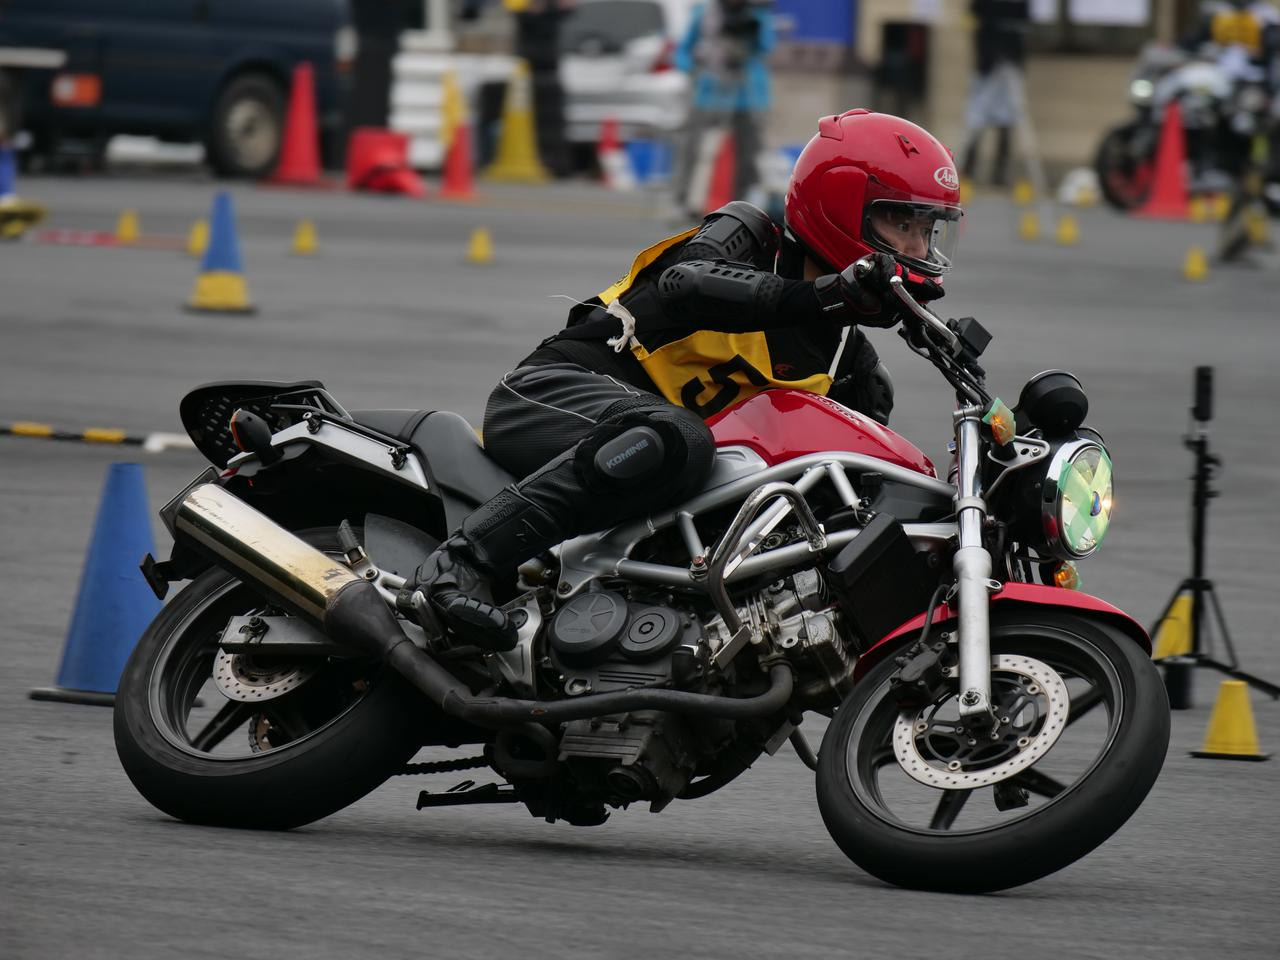 Images : 26番目の画像 - ジムカーナで活躍するホンダ「VTR」をもっと見る! - LAWRENCE - Motorcycle x Cars + α = Your Life.